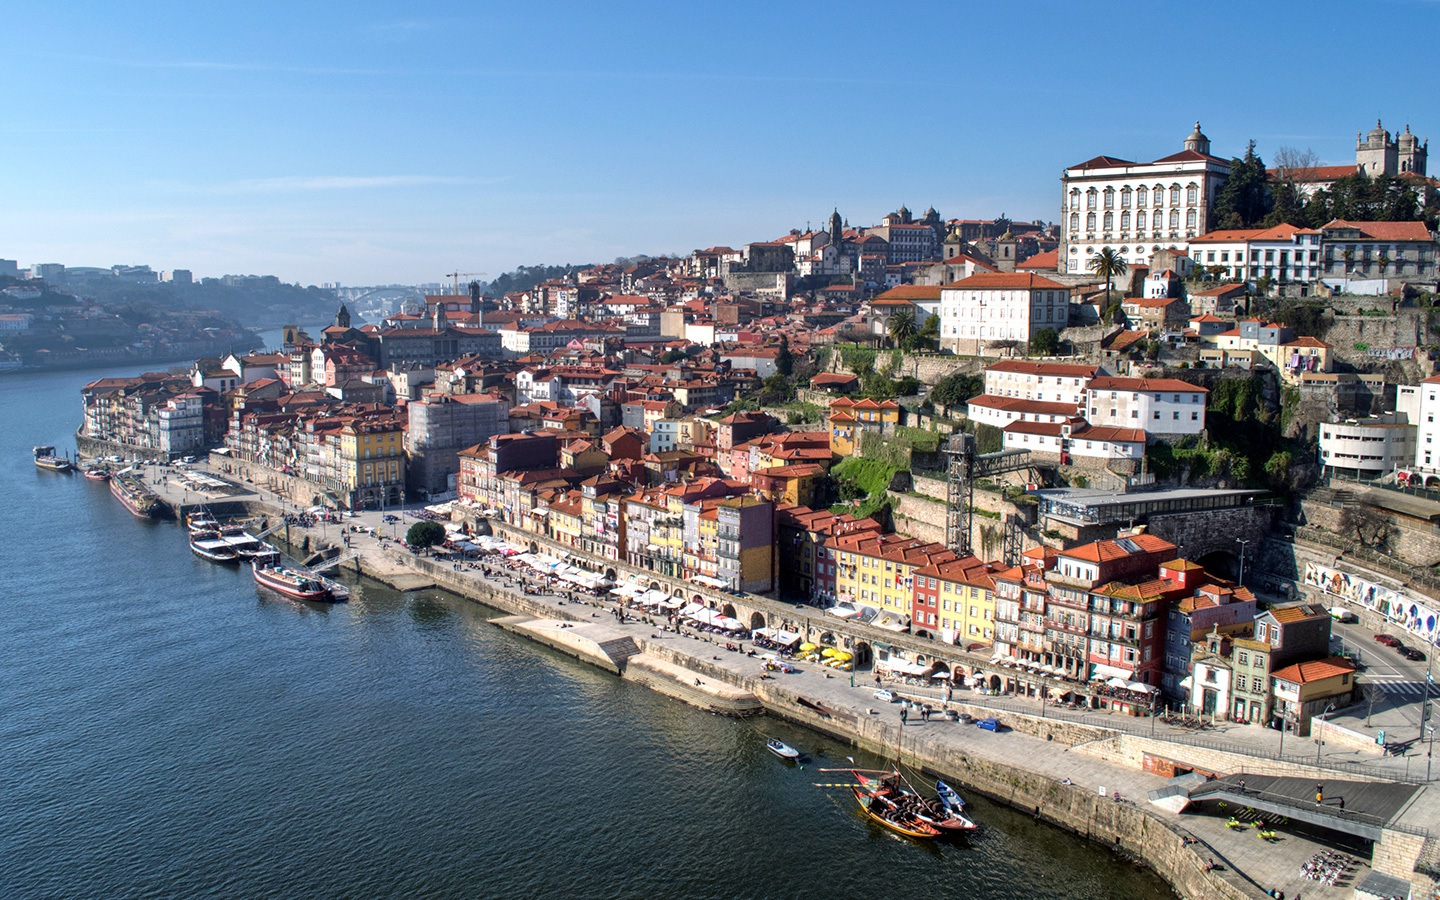 Getting lost in Porto's old town